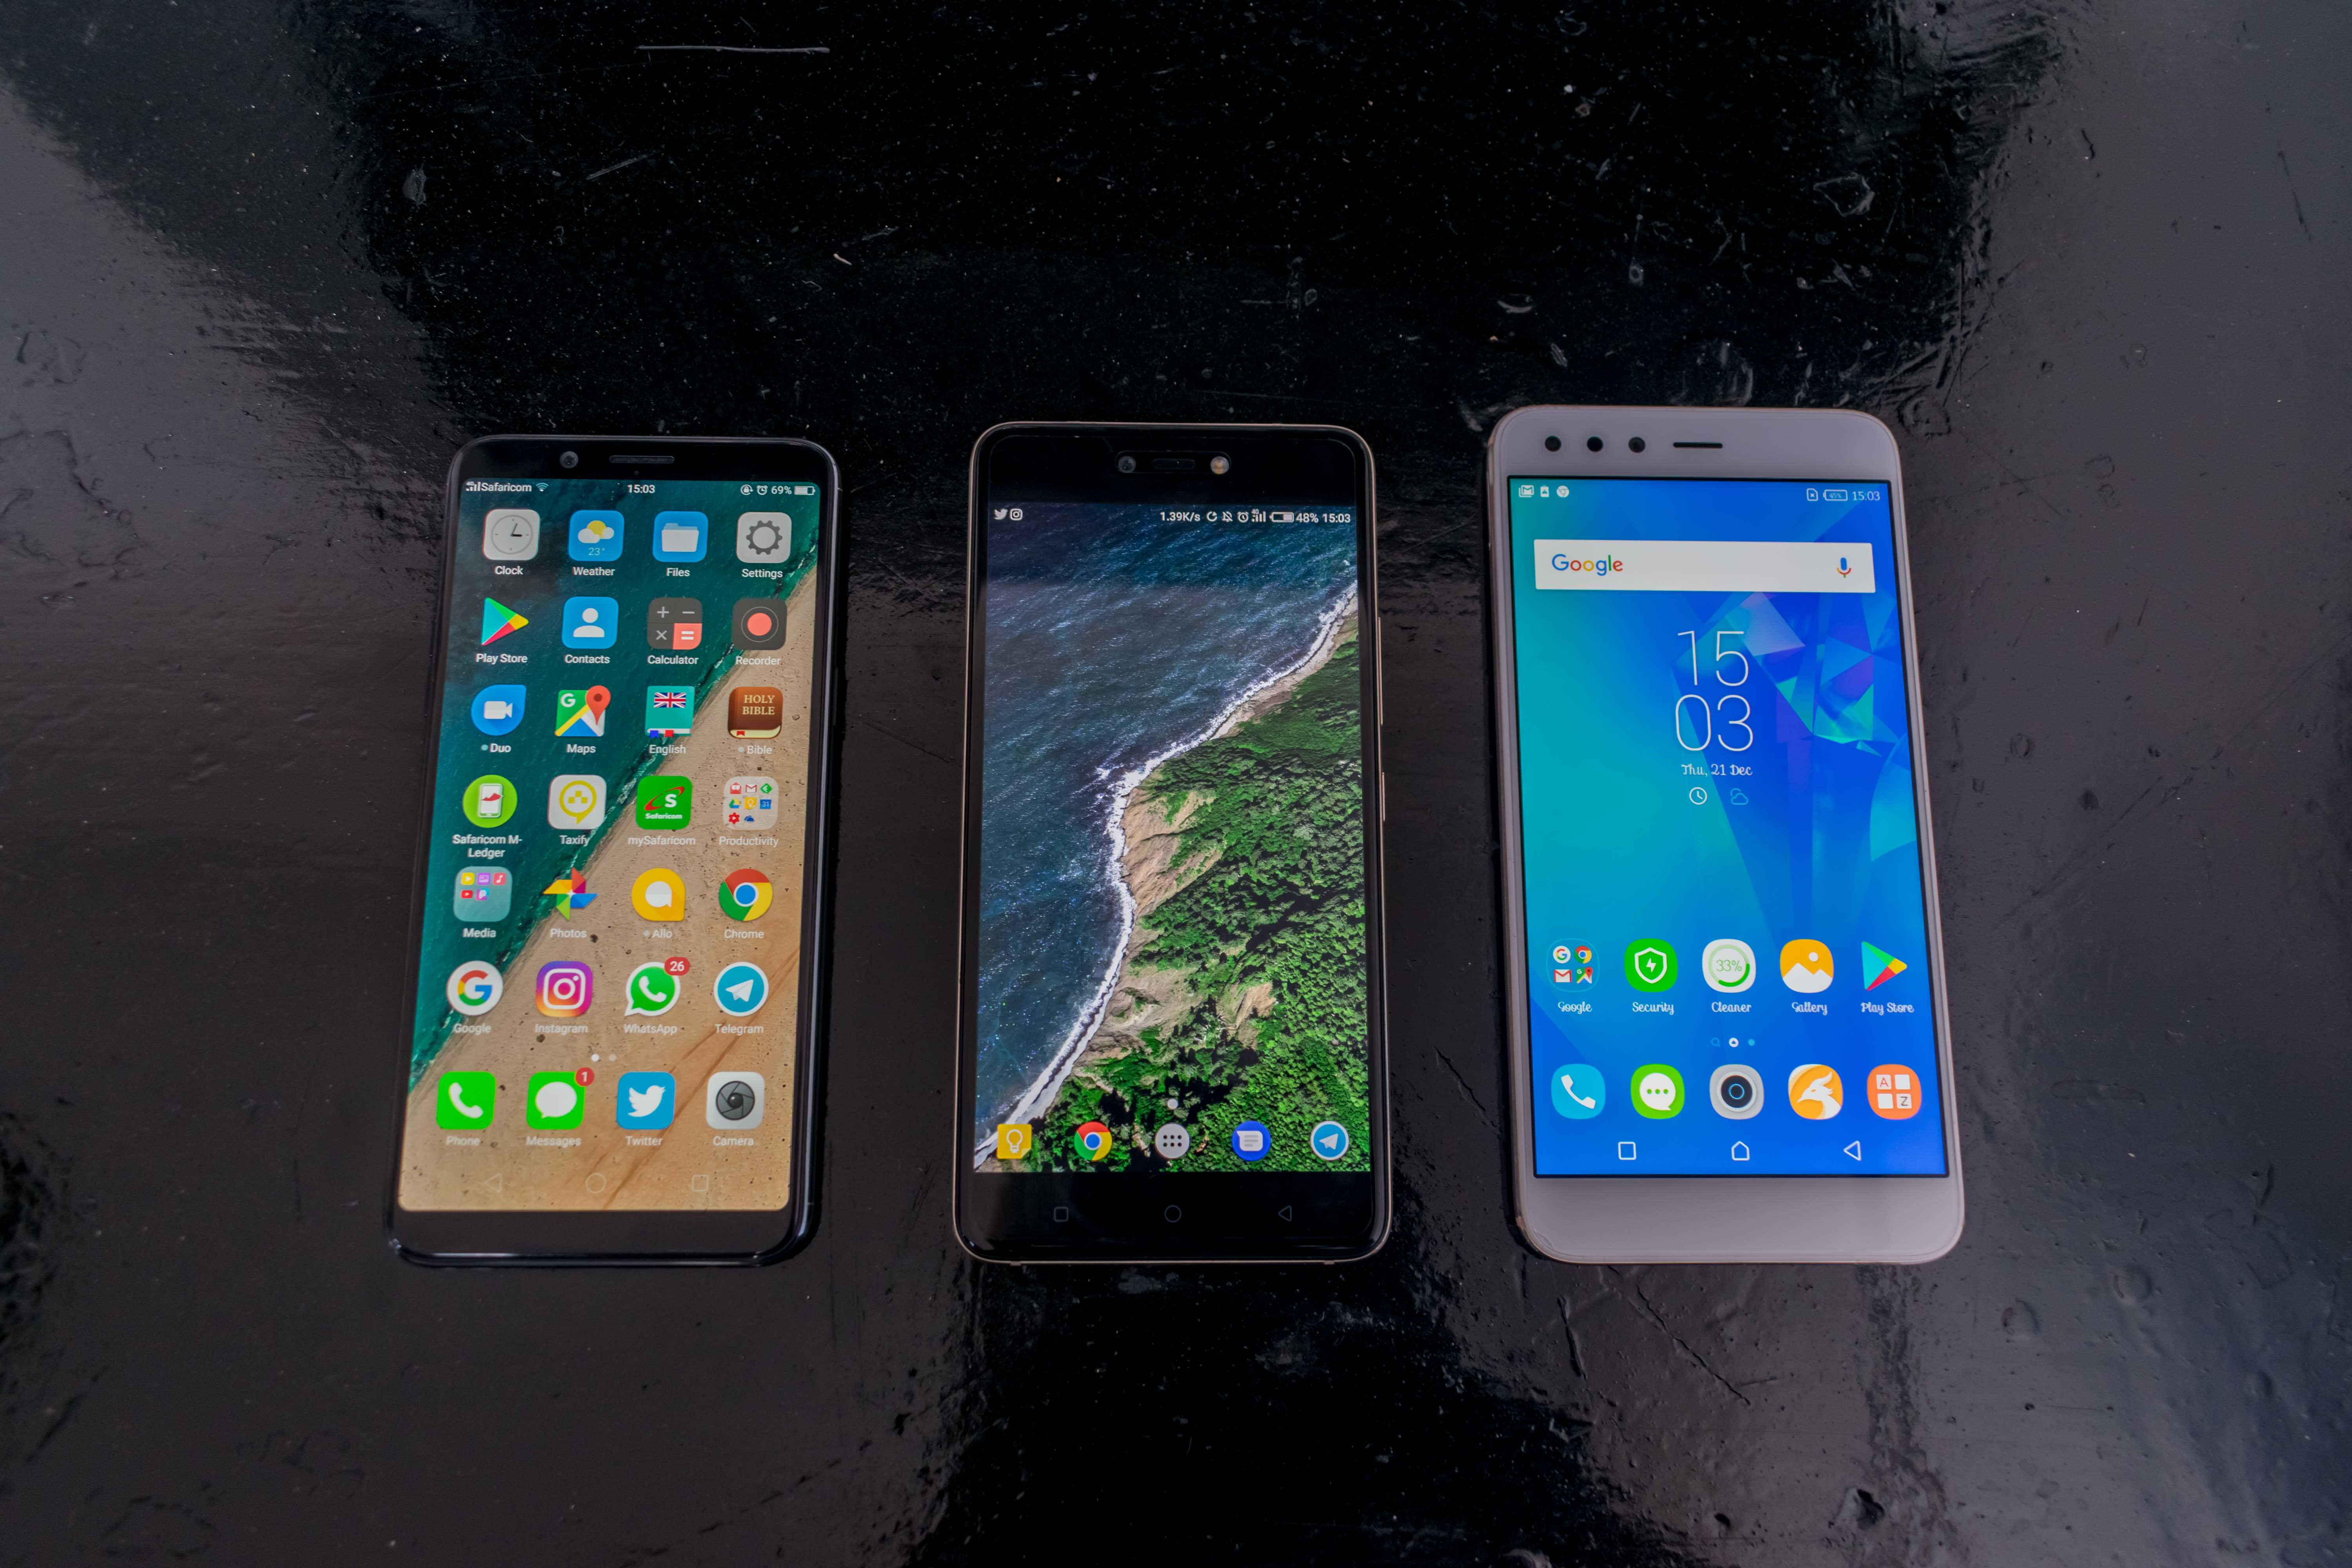 Infinix Zero 5 vs TECNO Phantom 8 vs OPPO F5 - Techweez